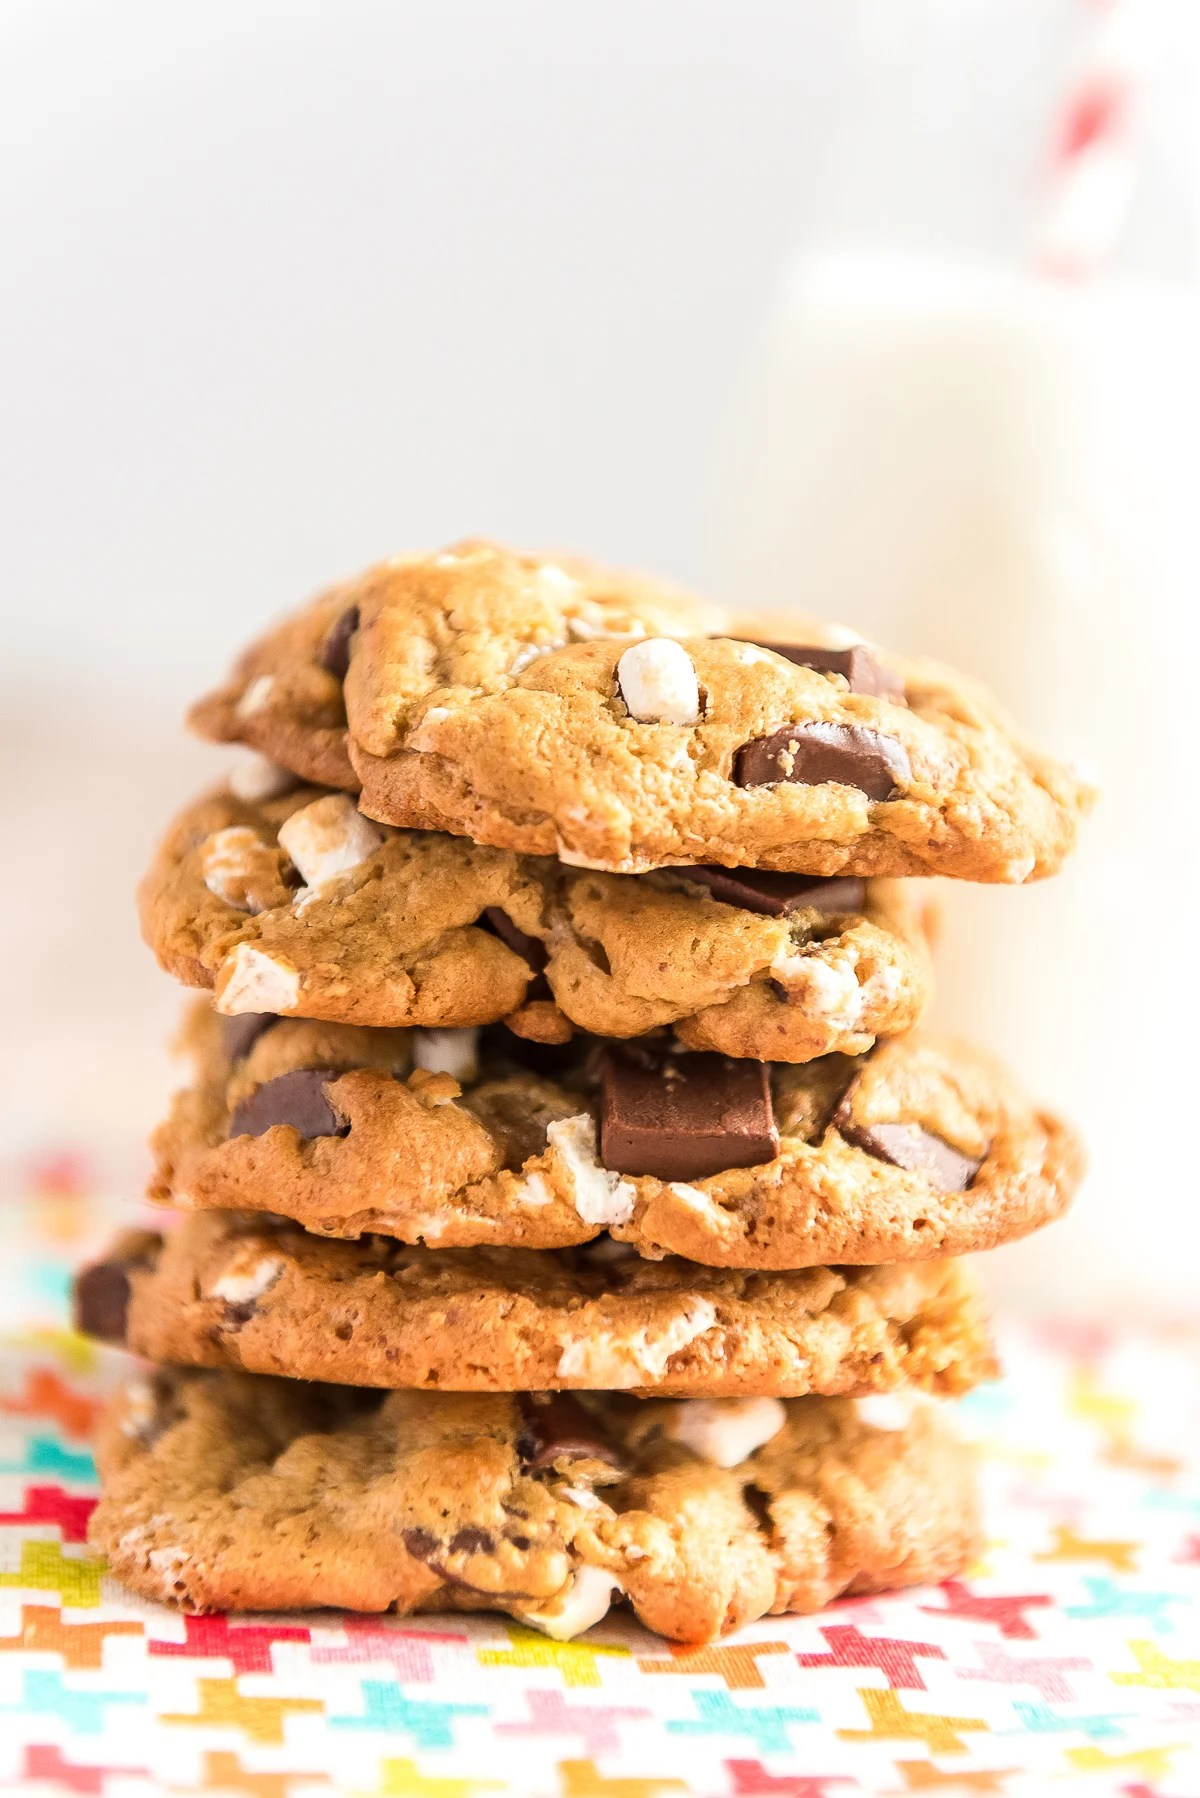 S'mores Cookies combine the flavors of marshmallows, chocolate, and graham crackers for a deliciously sweet cookie reminiscent of the classic summer treat!